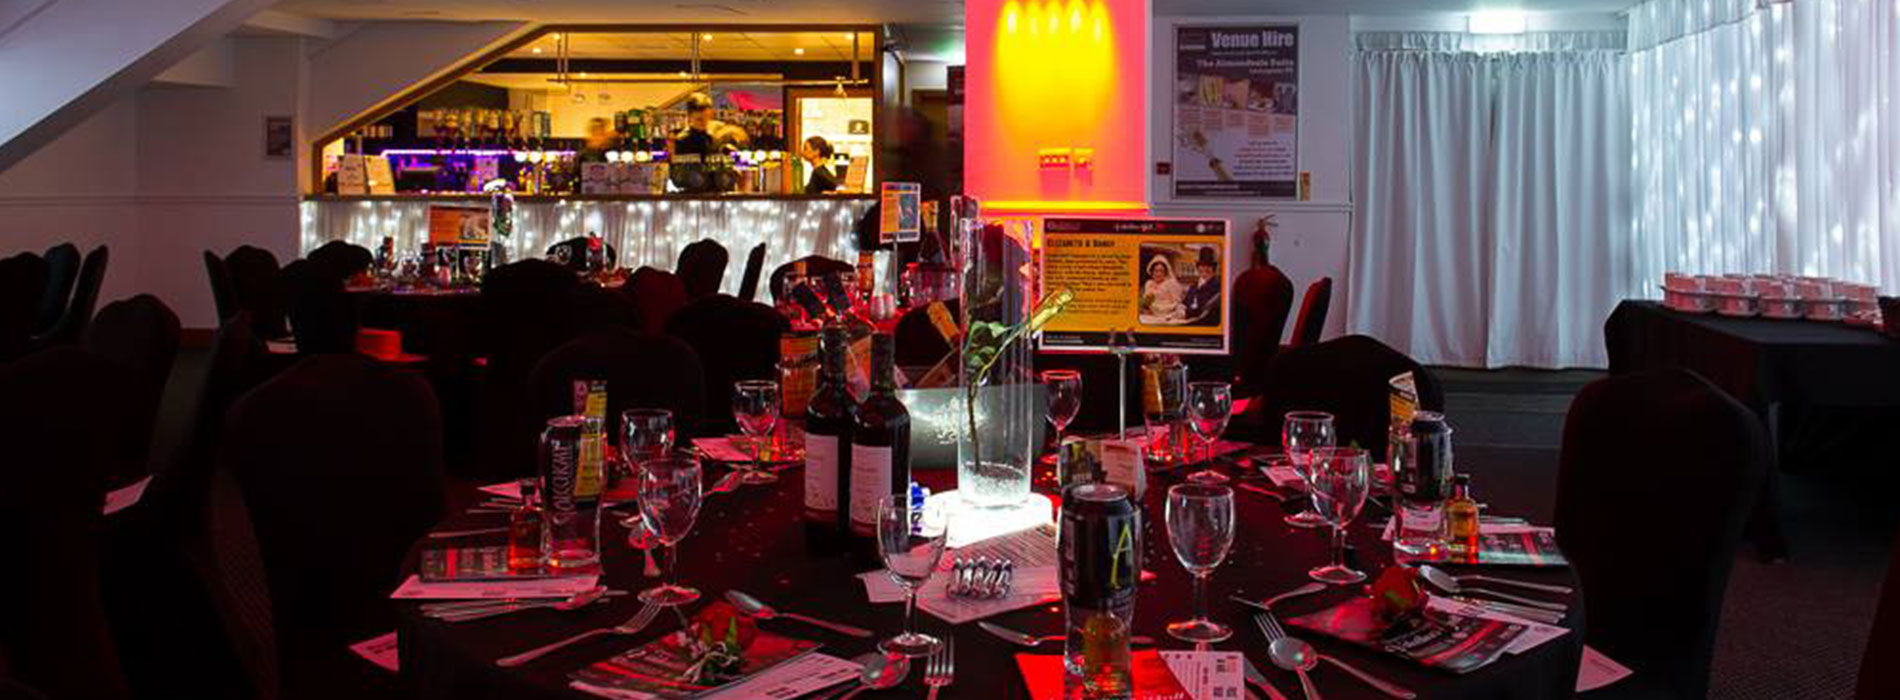 The Almondvale Suite Fundraiser Dinner, West Lothian